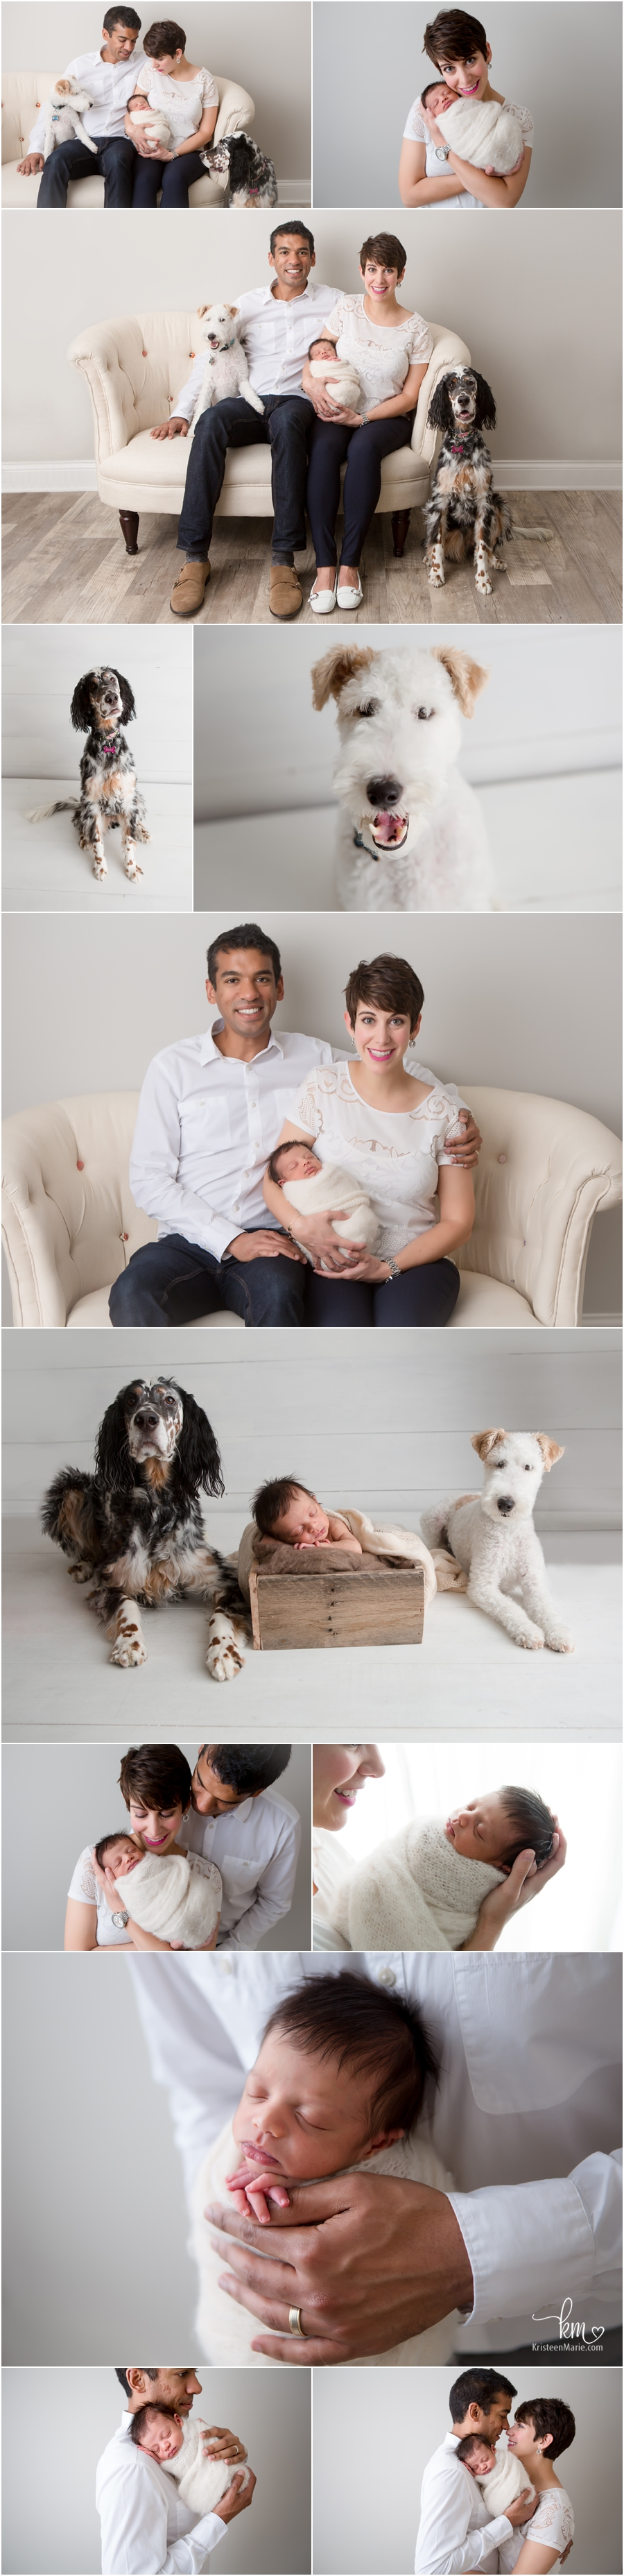 newborn pictures with the whole family - dogs included - Indianapolis family pictures